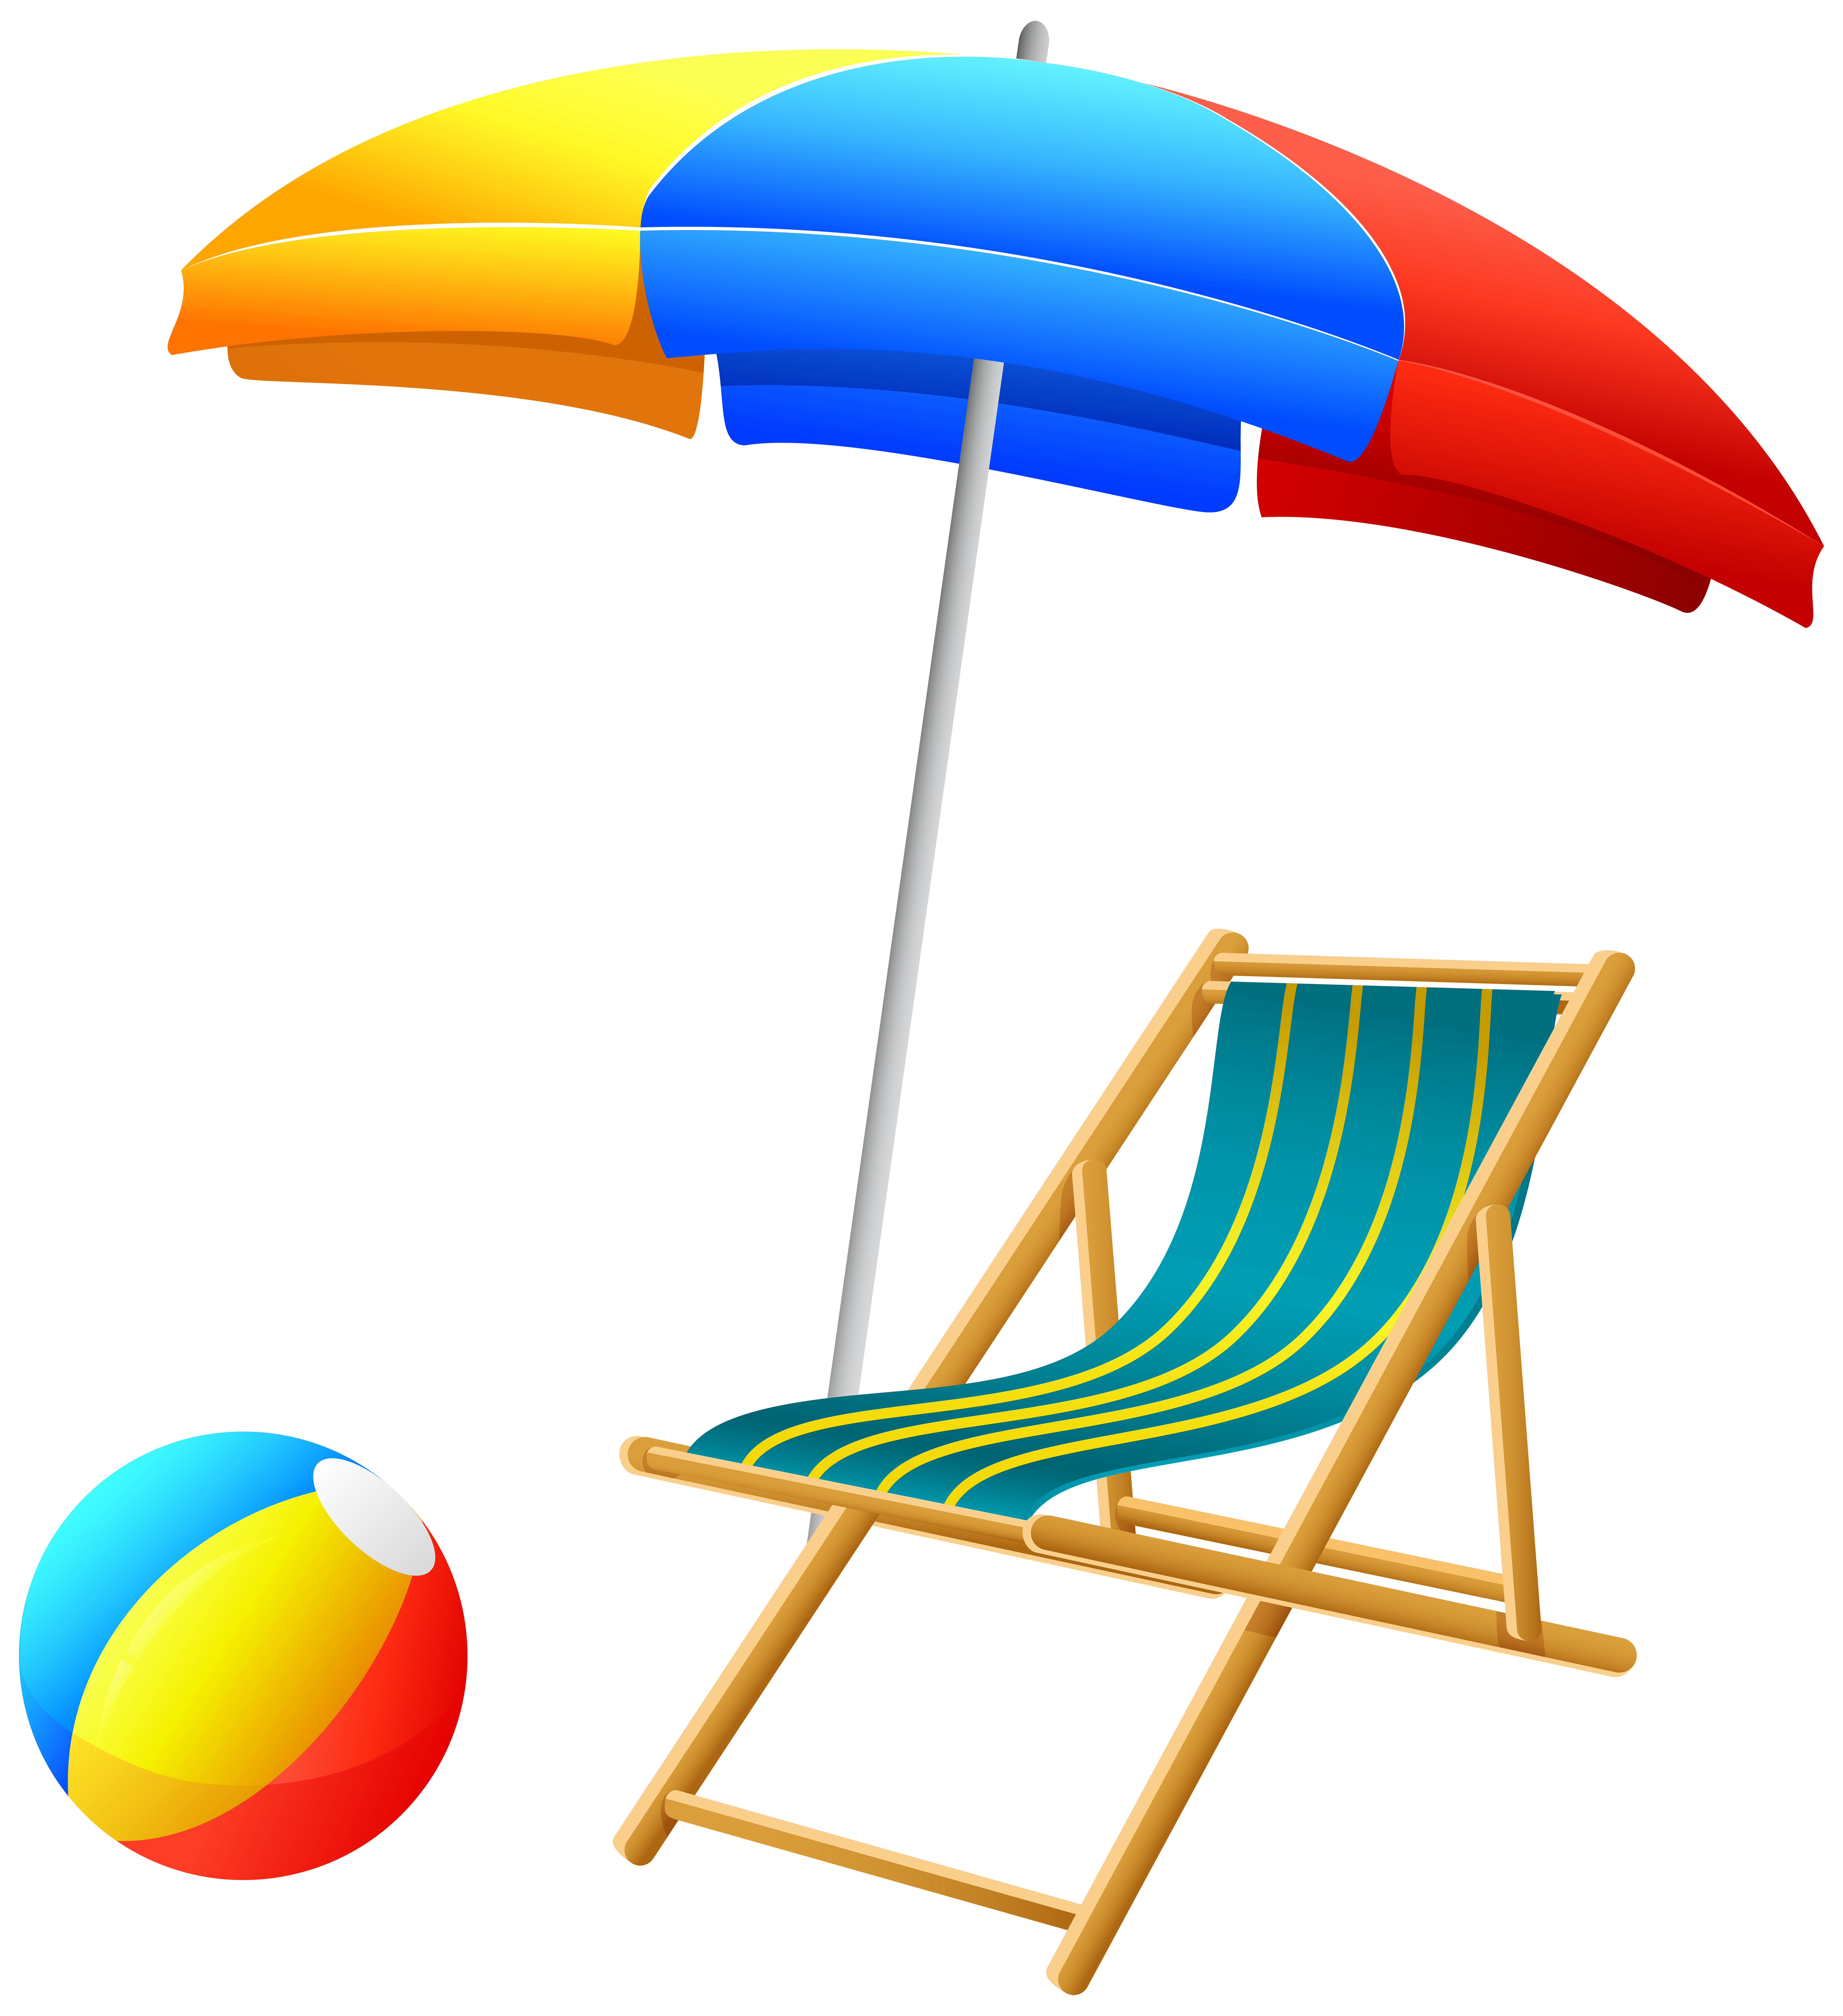 image transparent library Balls clipart summer. Beach umbrella with chair